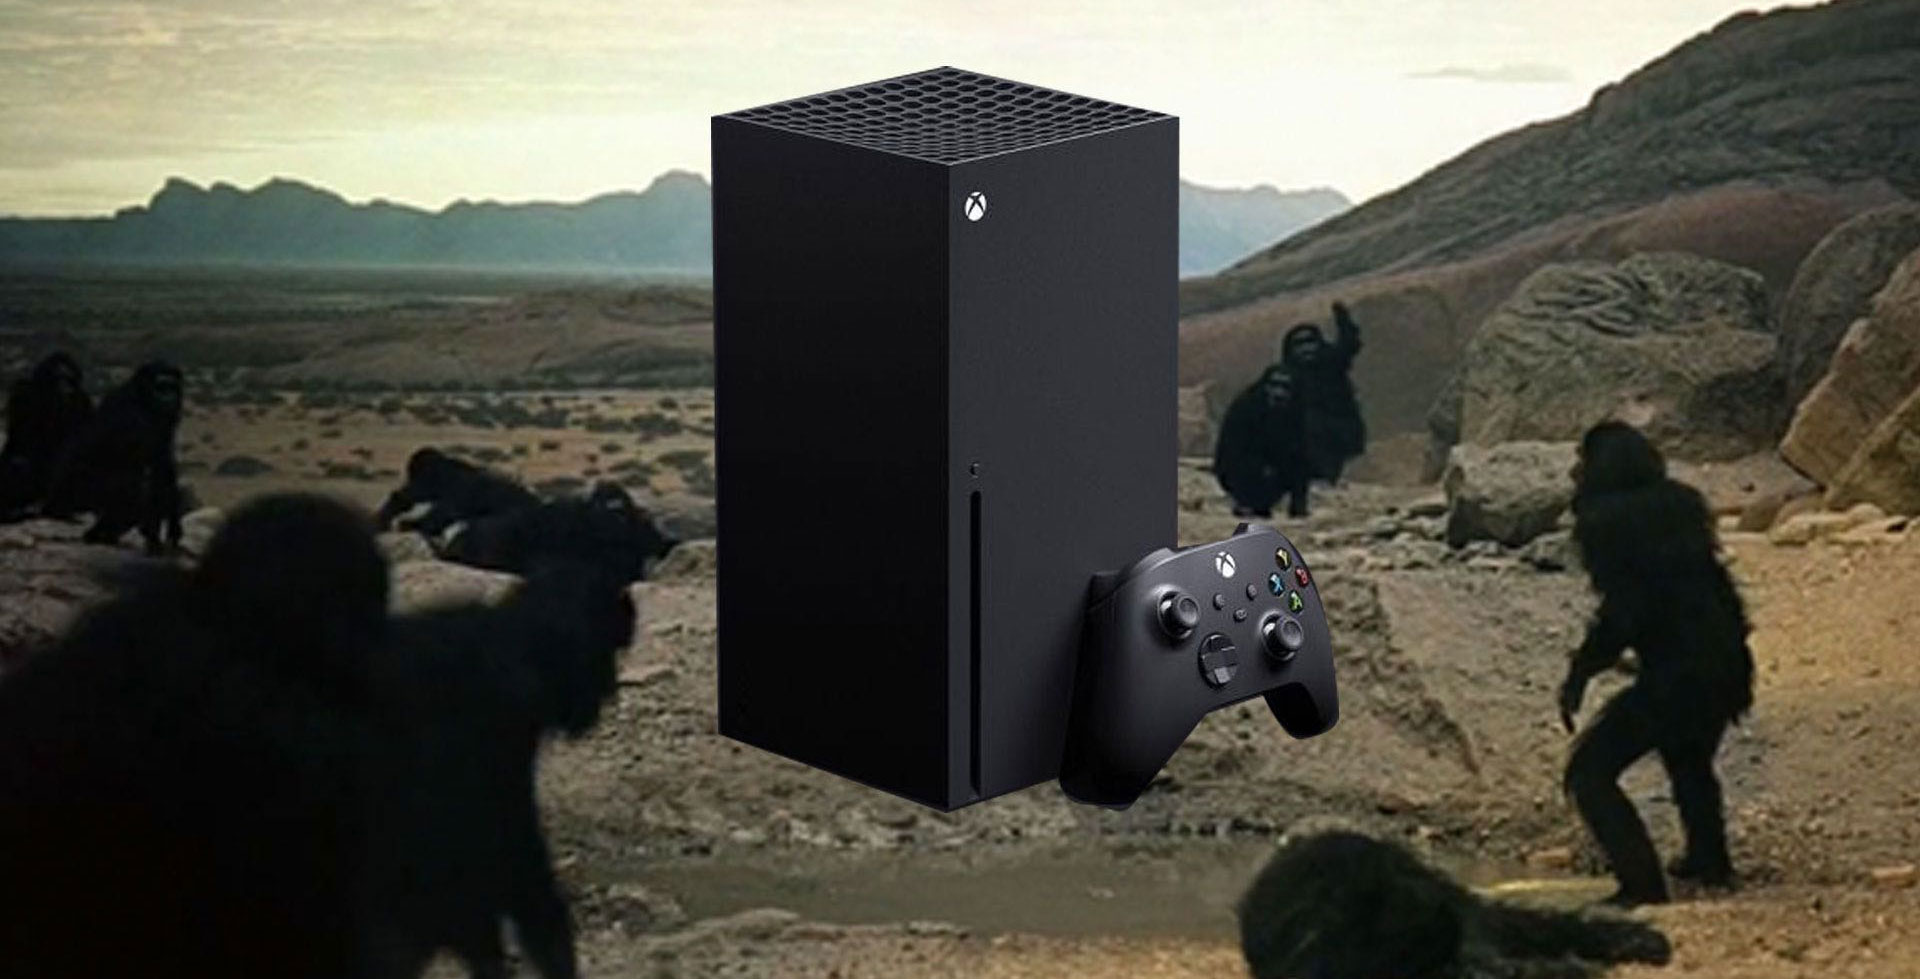 Now that the next-gen consoles have been announced, it's time to roast these gaming consoles the best way we know how: top tier gaming memes.